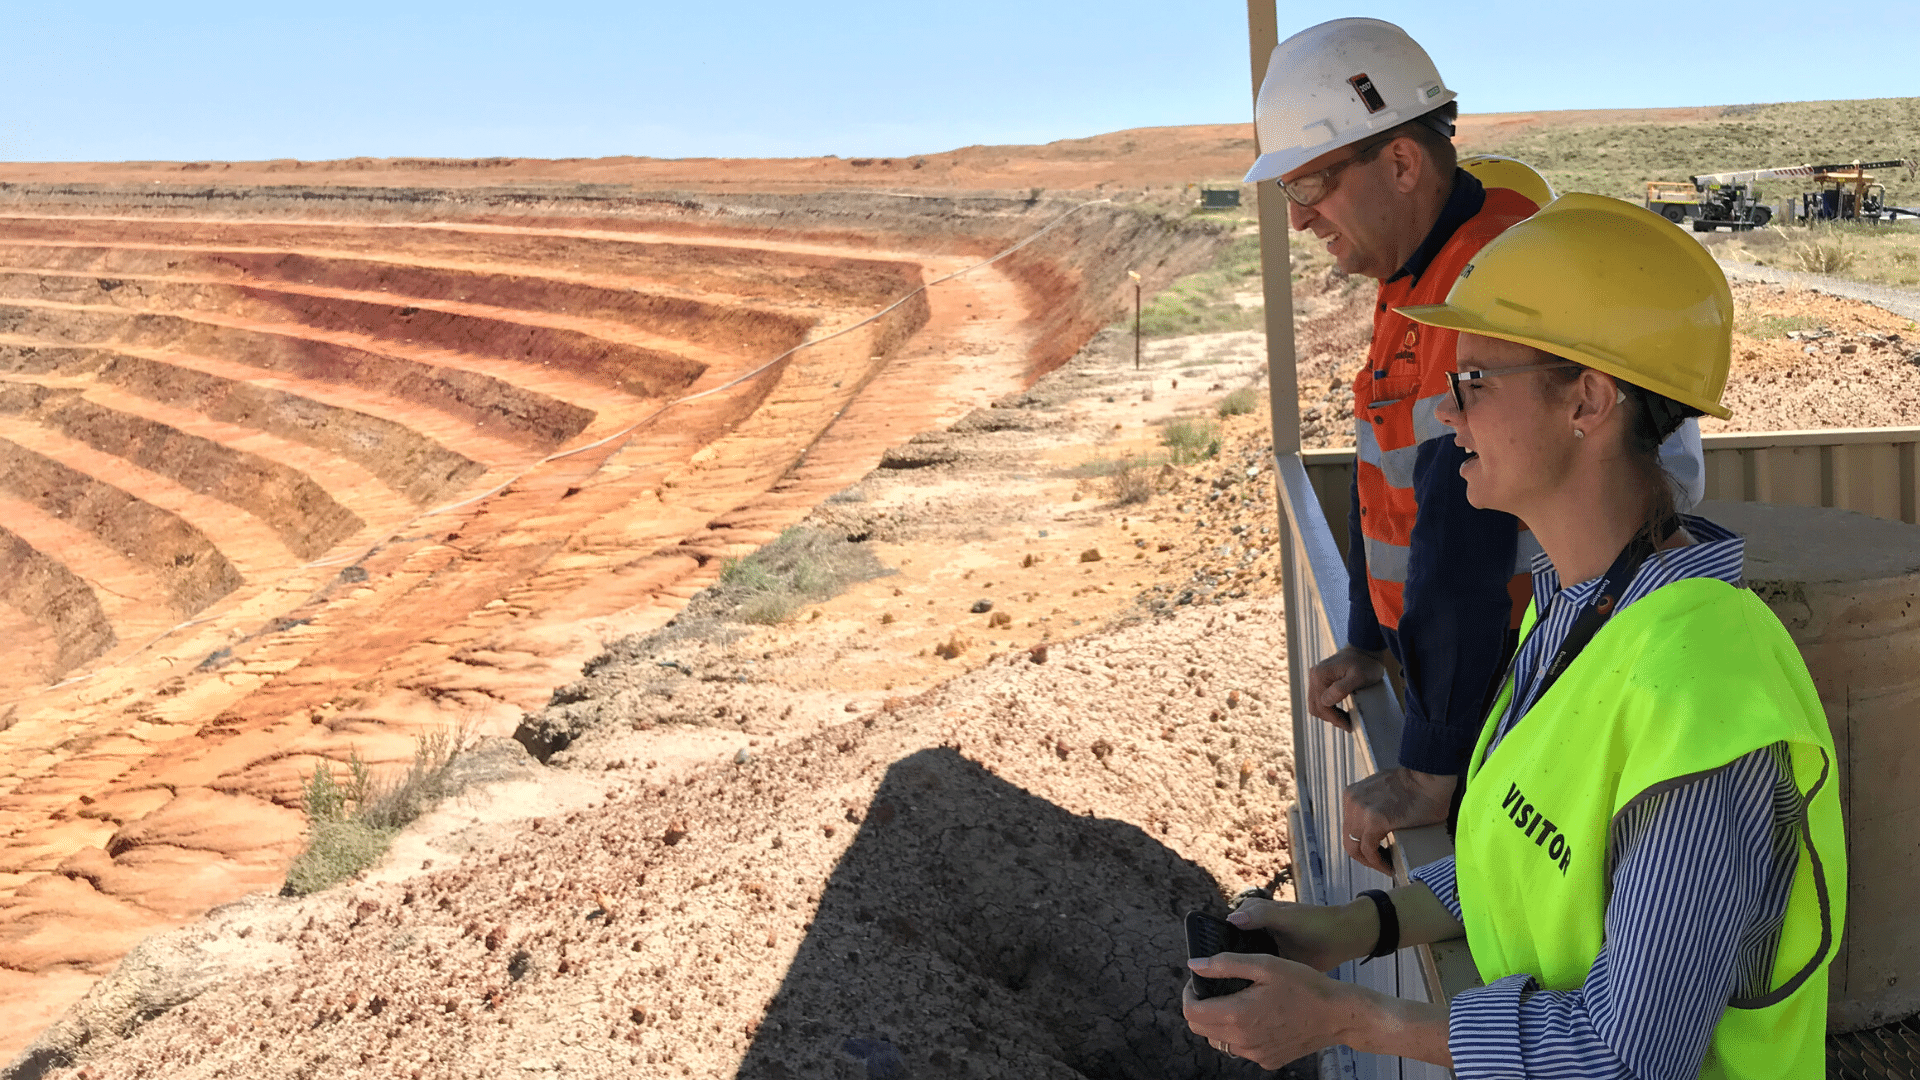 Member for Cootamundra Steph Cooke MP prior to social distancing inspects Lake Cowal Gold Mine in the Bland Shire with visitor high viz vest on and hard hat.  The golden stacked quarry is visible in the background as a mining representative also looks on beside Steph.